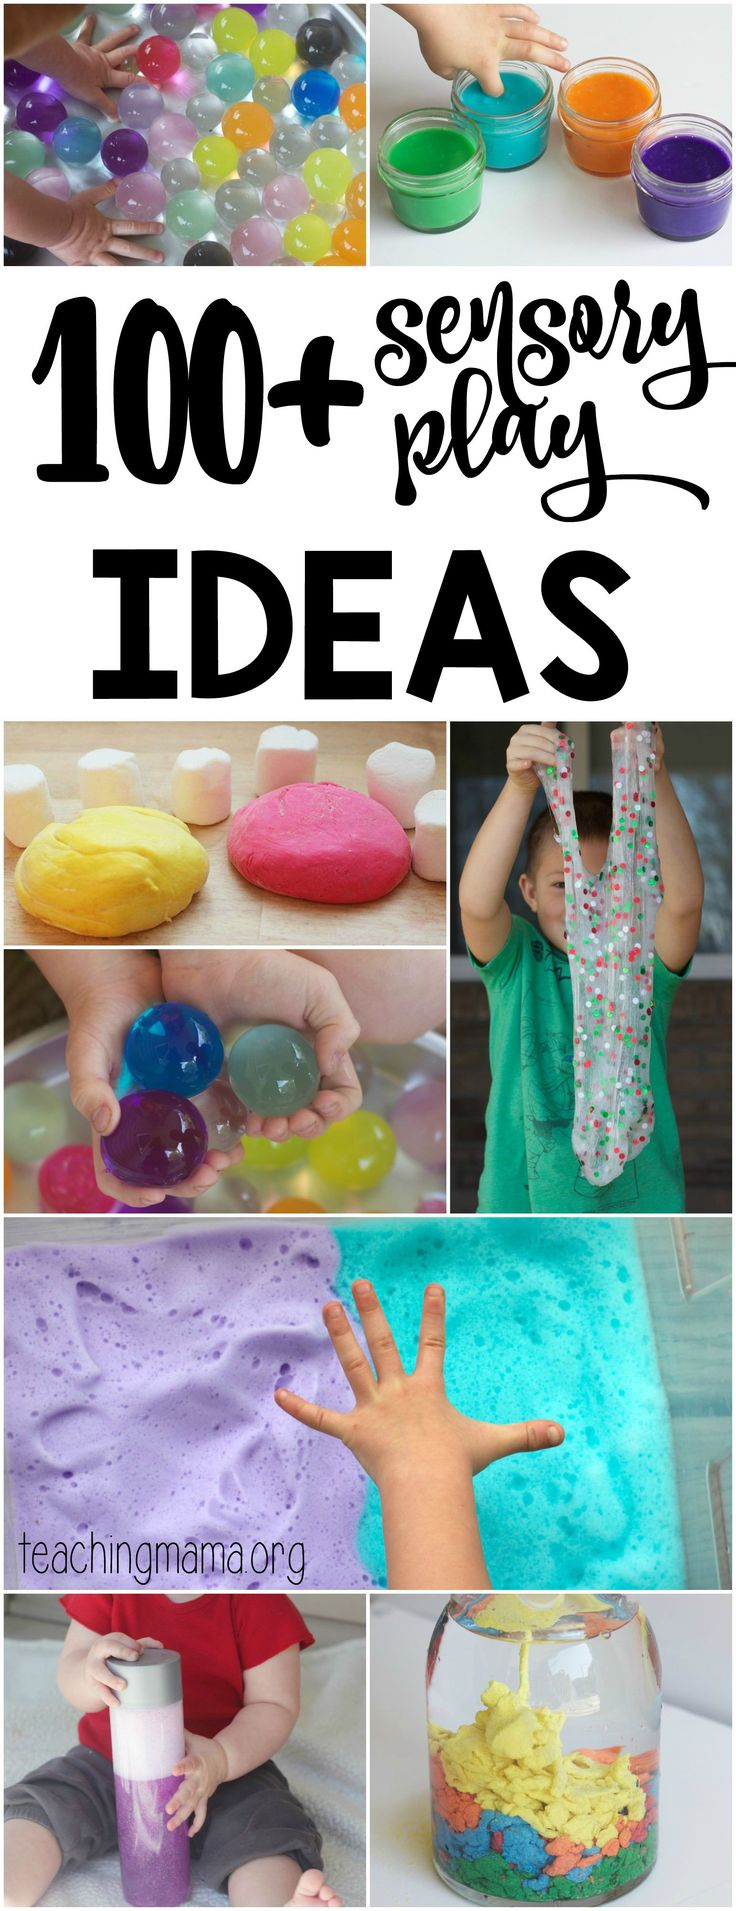 100 sensory play ideas